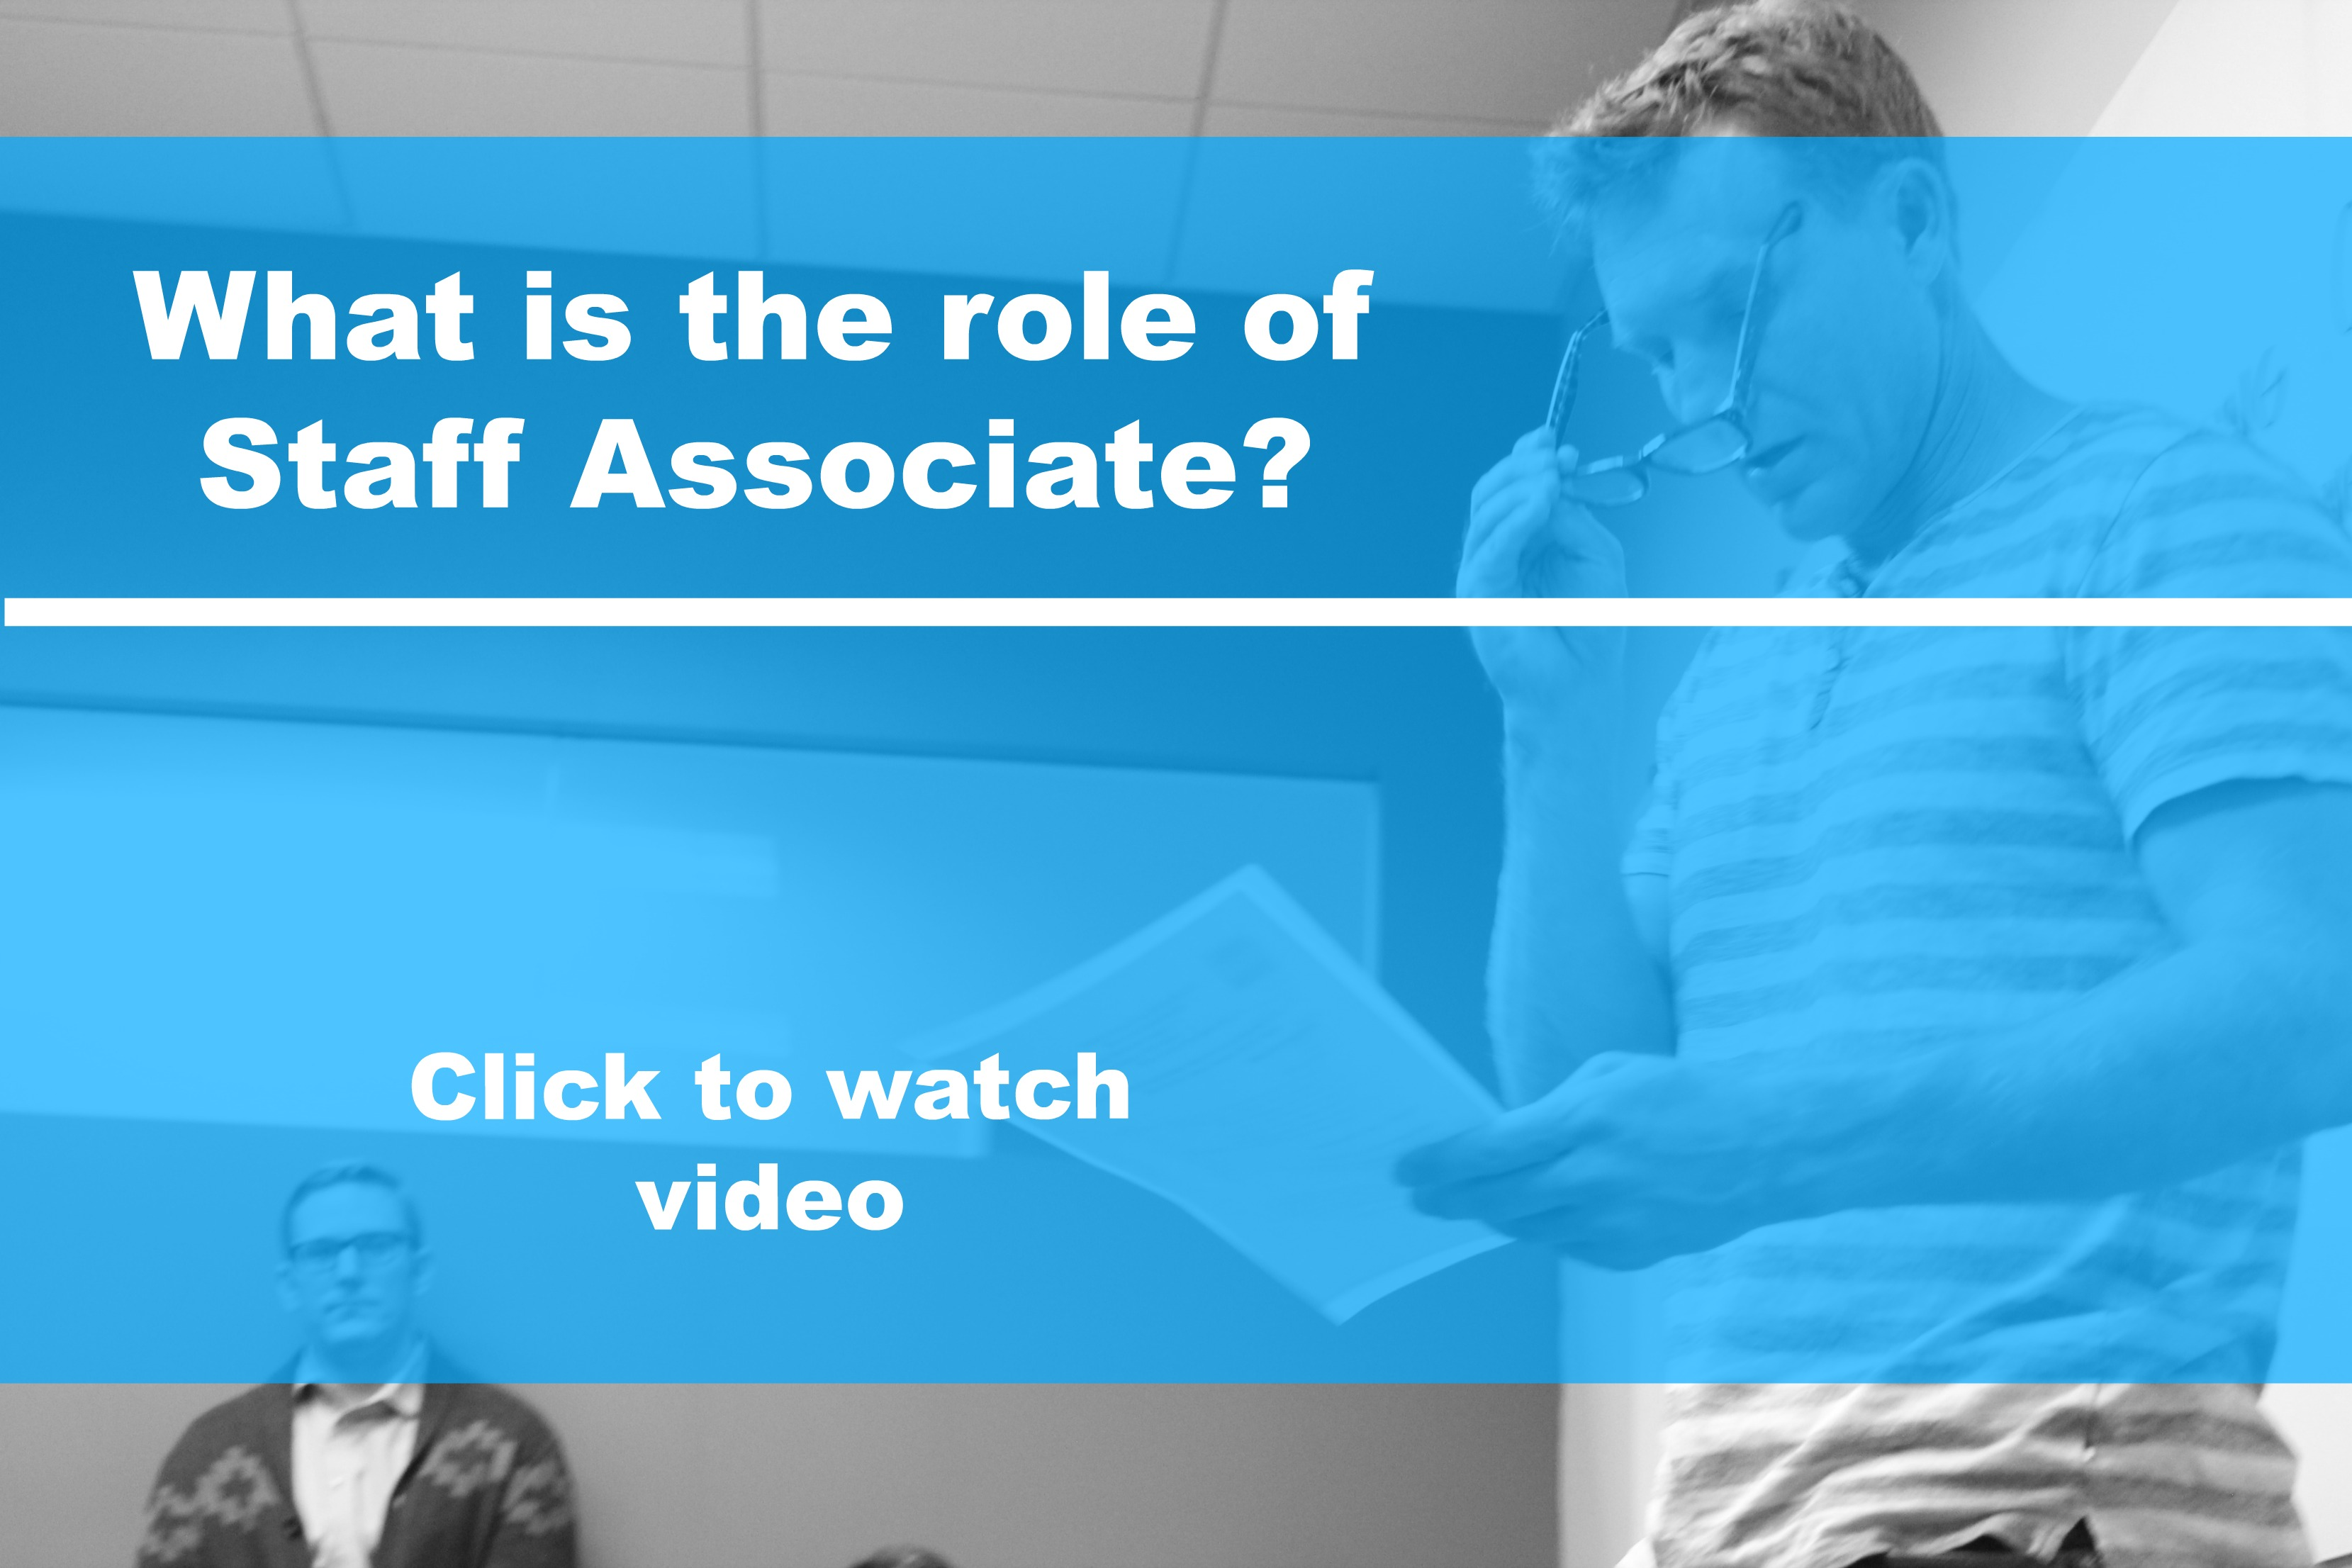 What is the role of a Staff Associate?